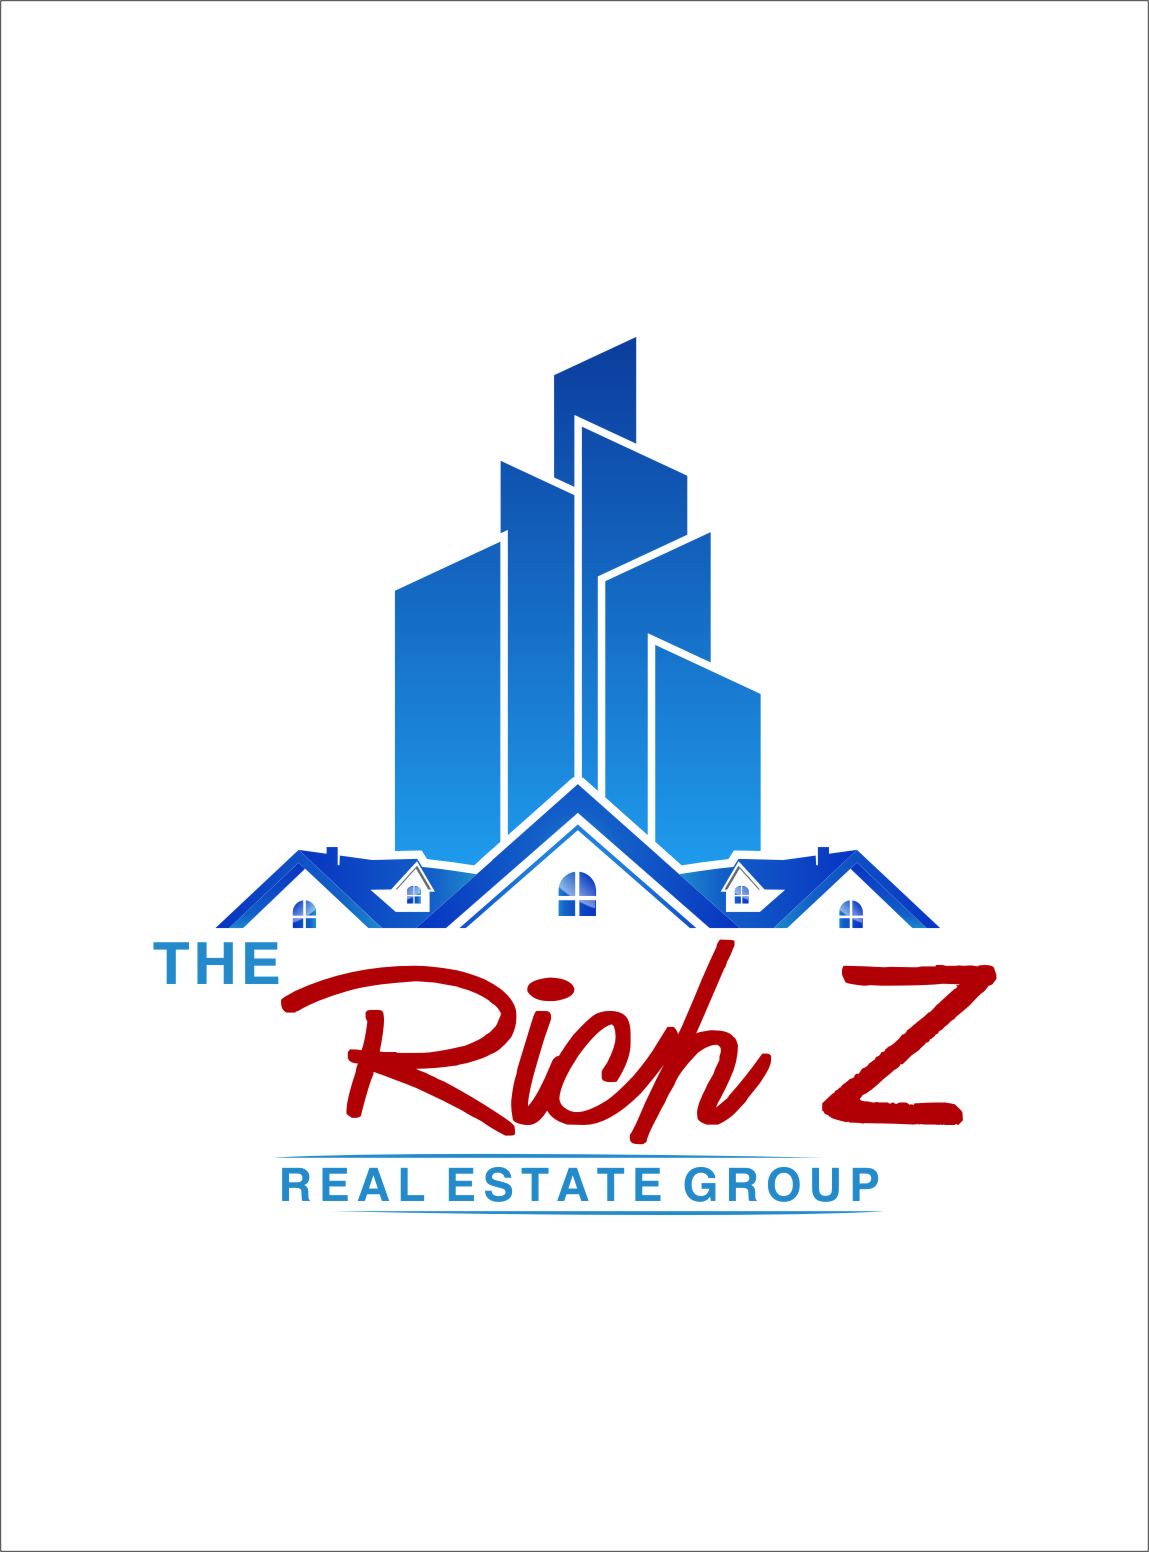 Logo Design by Ngepet_art - Entry No. 169 in the Logo Design Contest The Rich Z. Real Estate Group Logo Design.